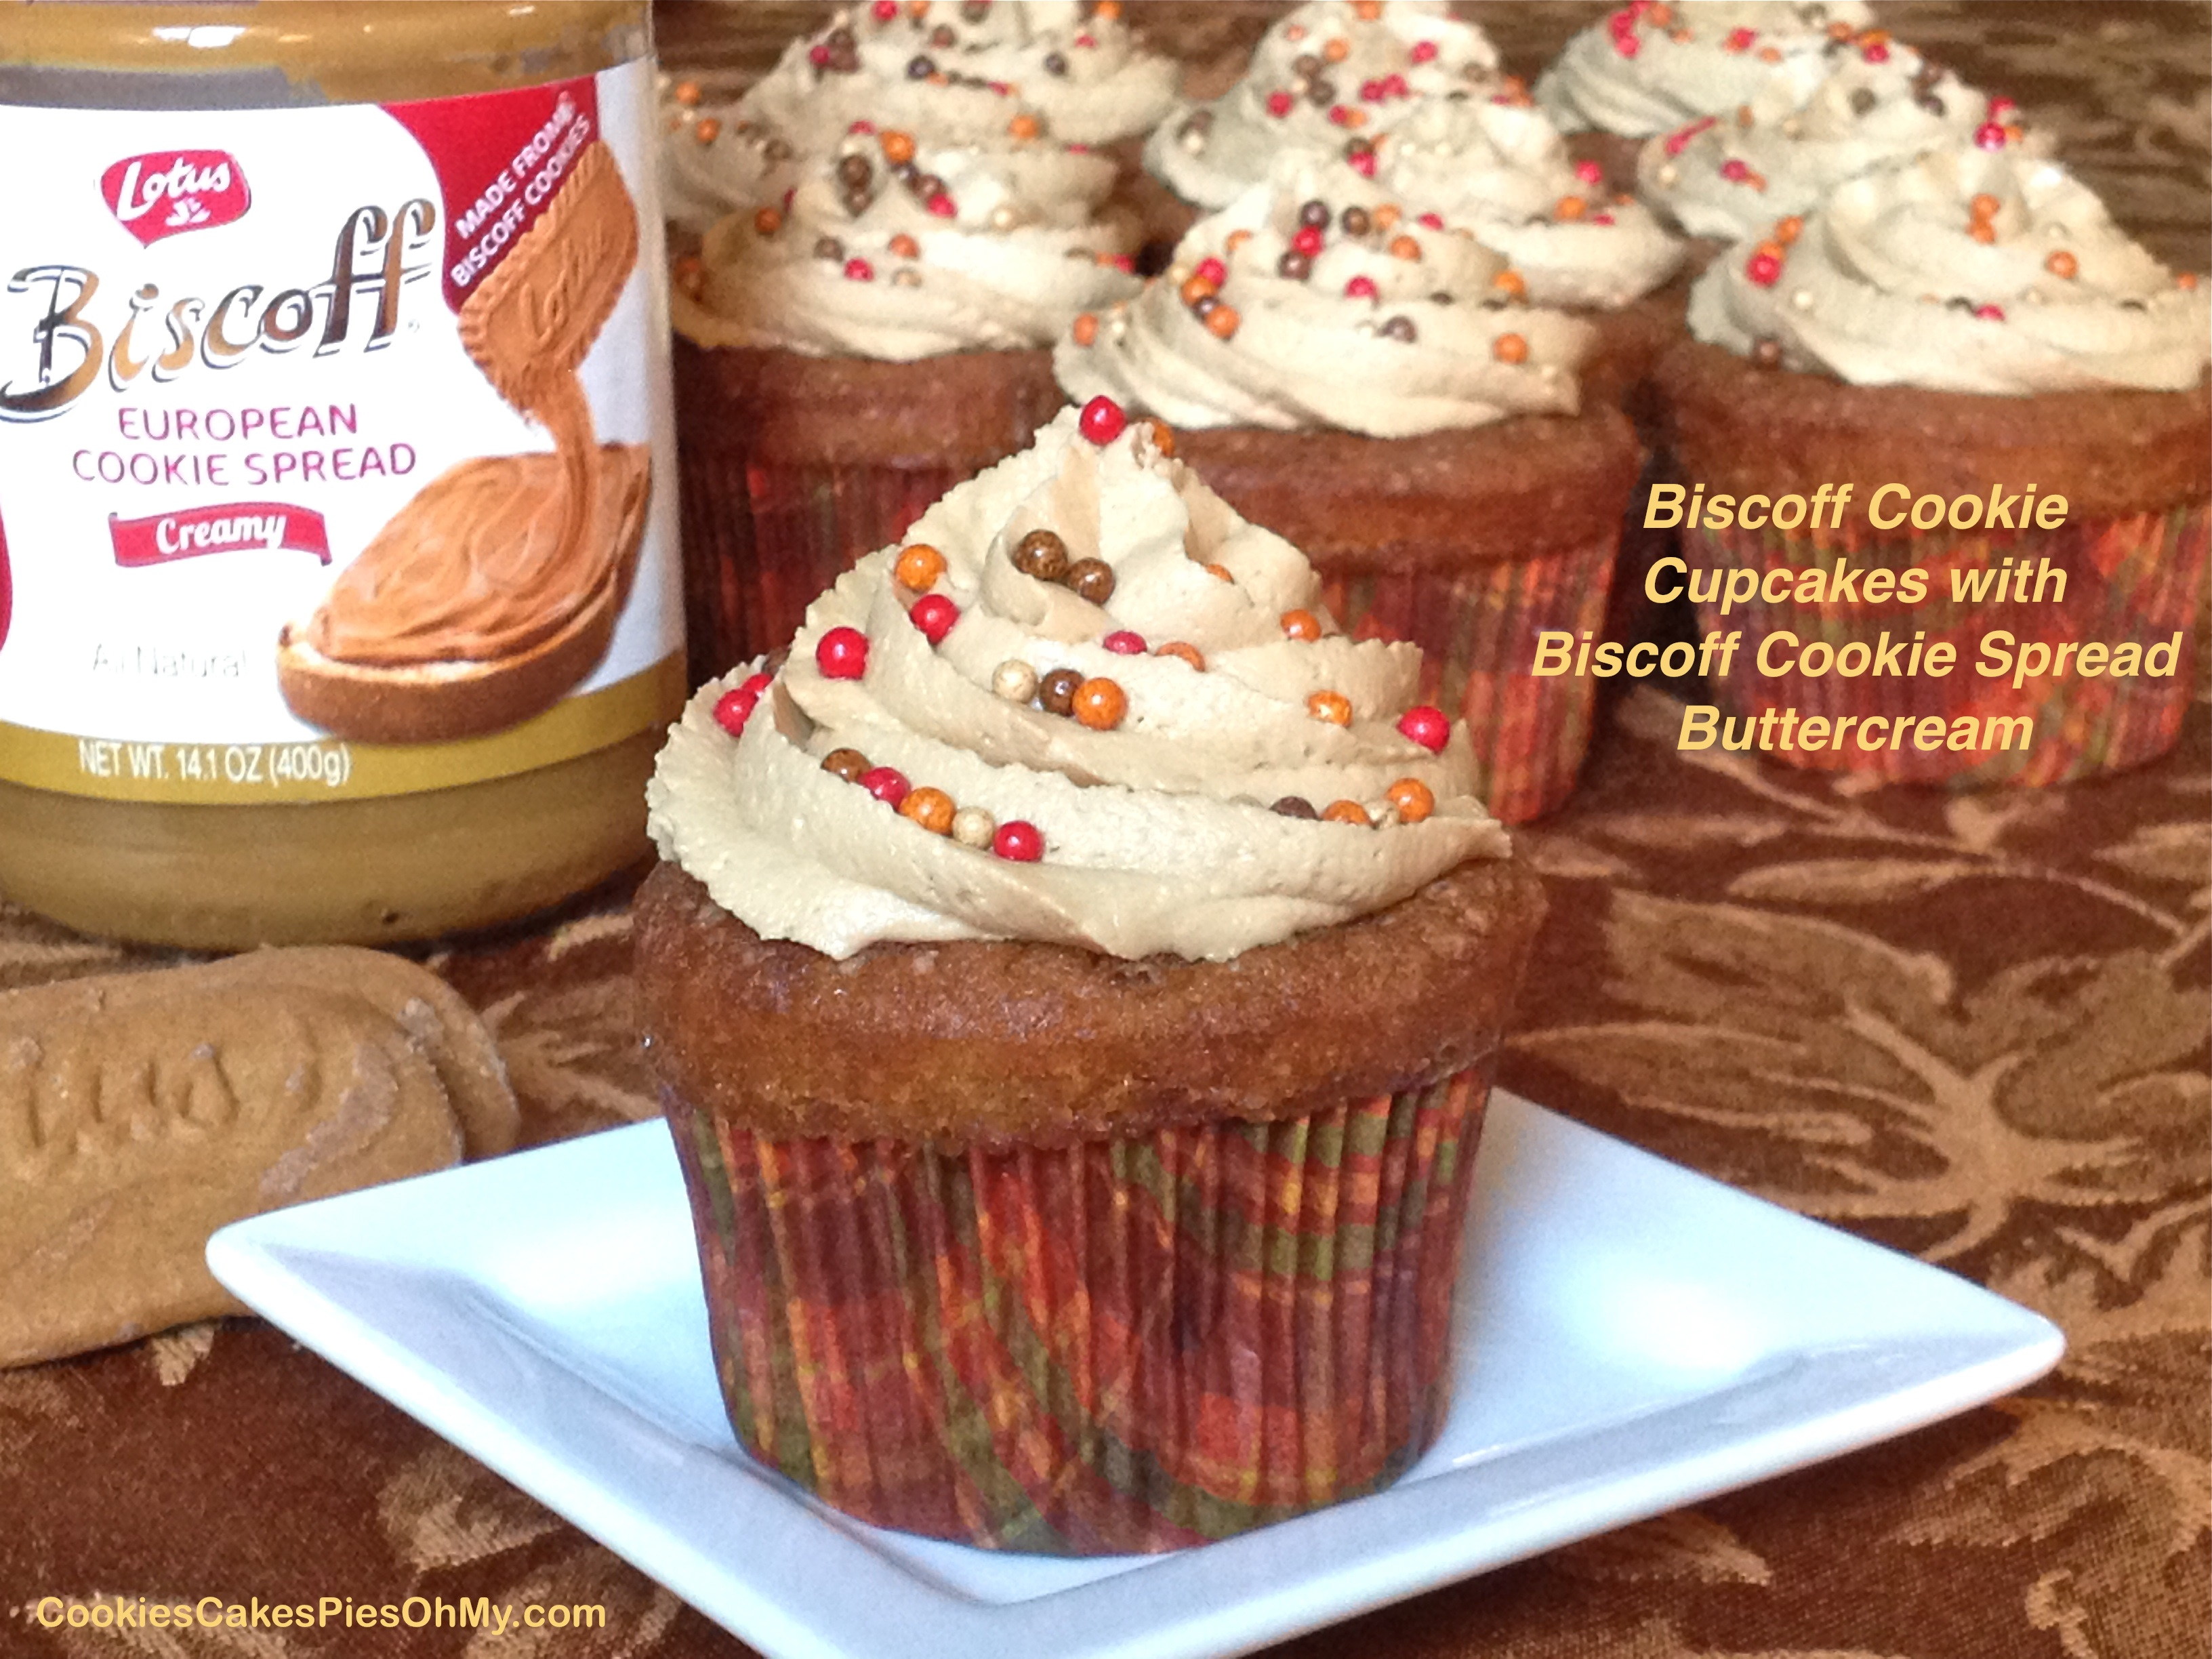 Biscoff Cookie Cupcakes with Biscoff Cookie Spread Buttercream ...